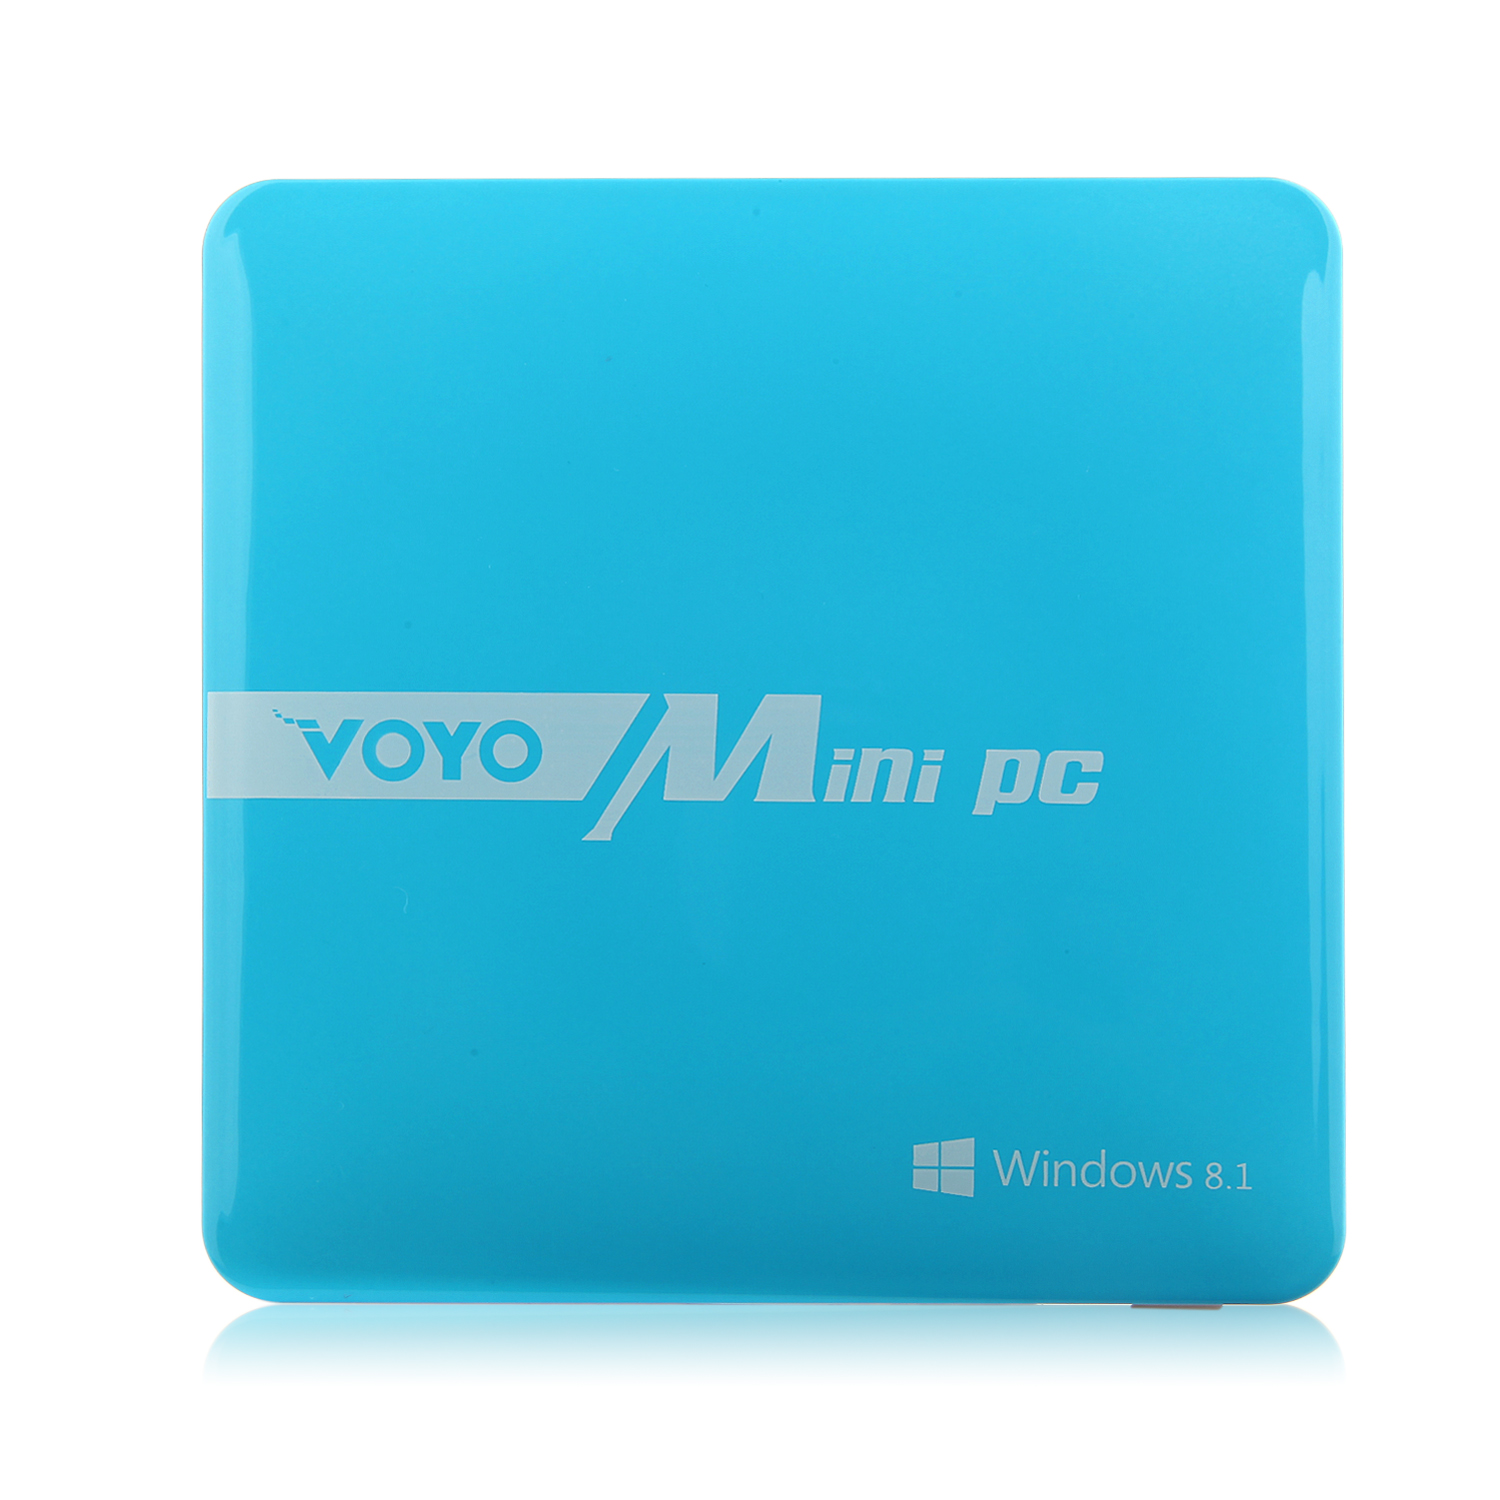 VOYO WinPad Mini TV Box Windows 8.1 Intel Z3735F Quad-Core Bluetooth 2GB 64GB Blue